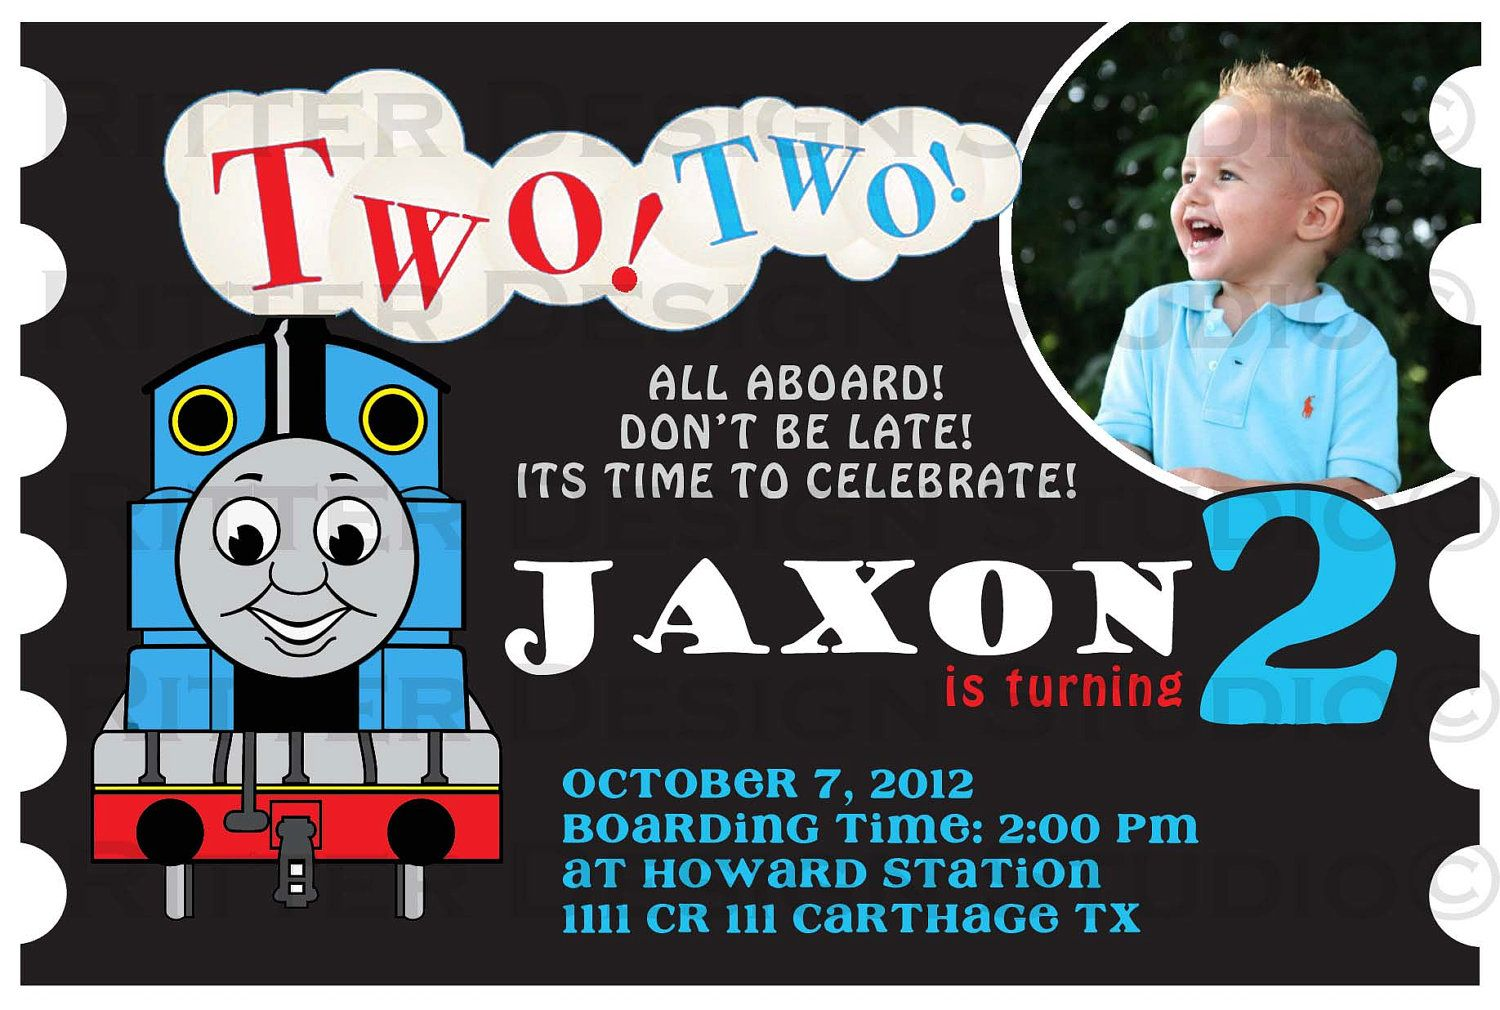 Thomas the train birthday invitation birthday party ideas thomas the train birthday invitation for other birthdays the two two can be changed to choo choo this is a custom digitalprintable design filmwisefo Gallery